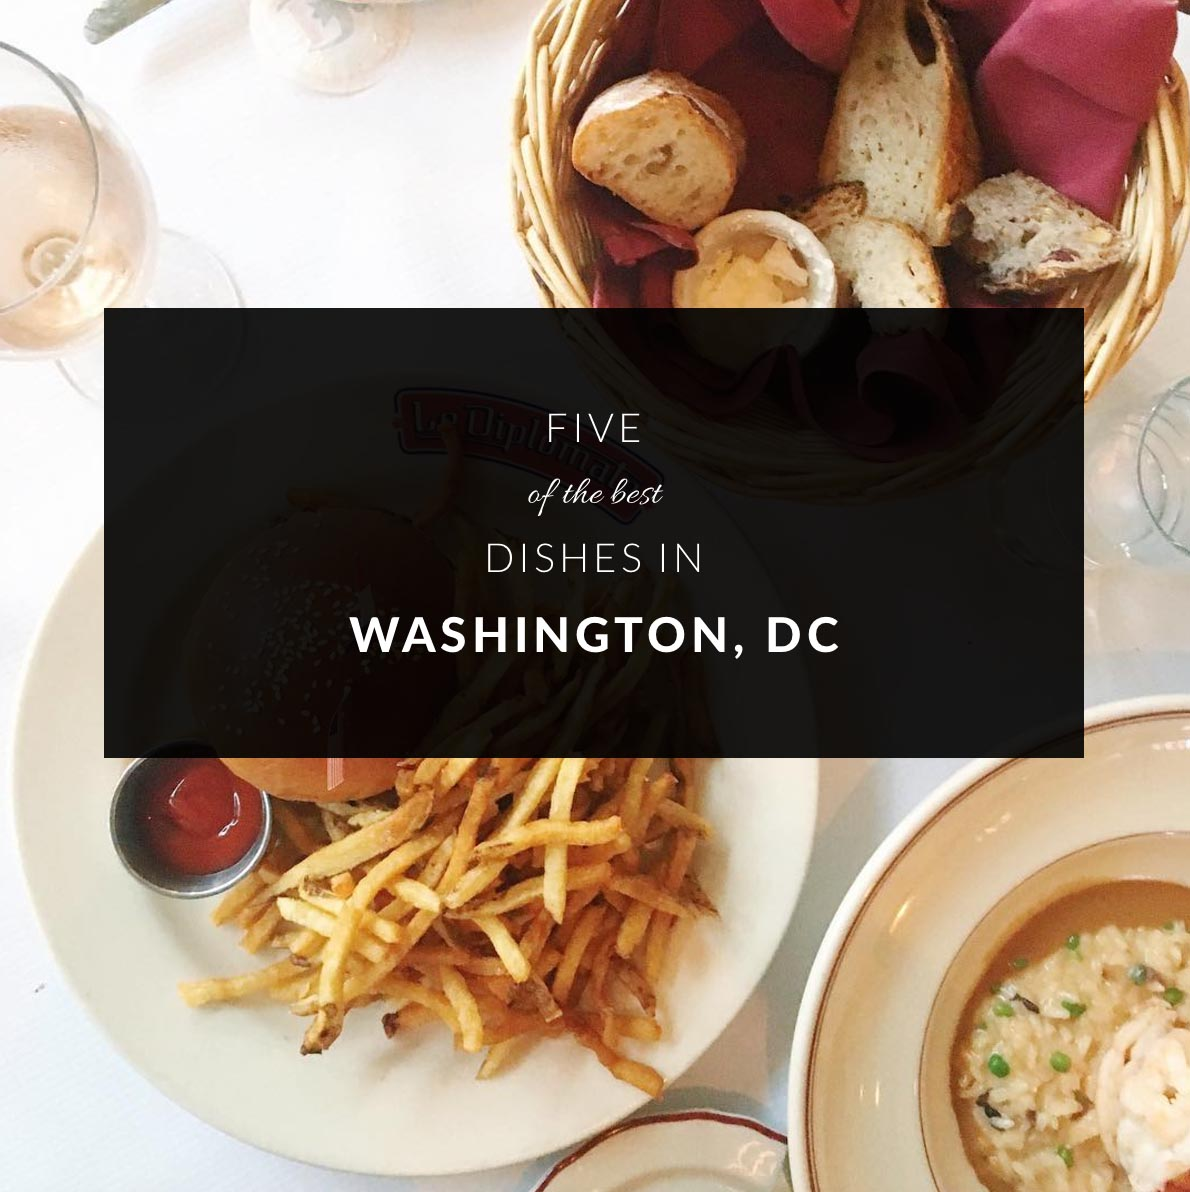 Five of the best dishes in Washington, DC